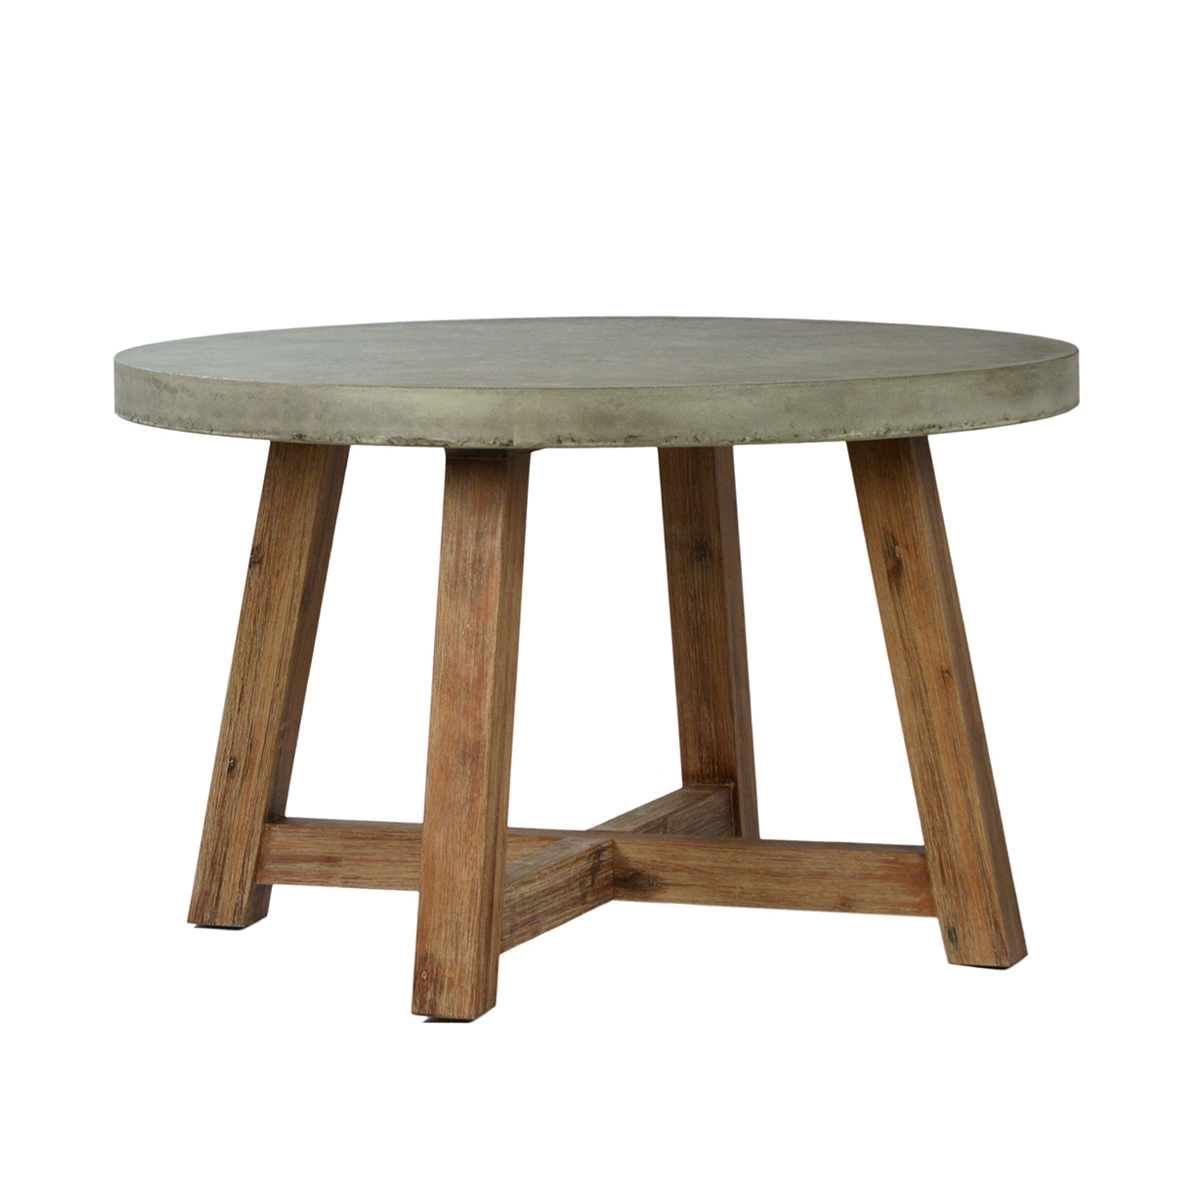 $2,100.00 - Outdoor Round Cement Dining Table Furniture Mix Furniture